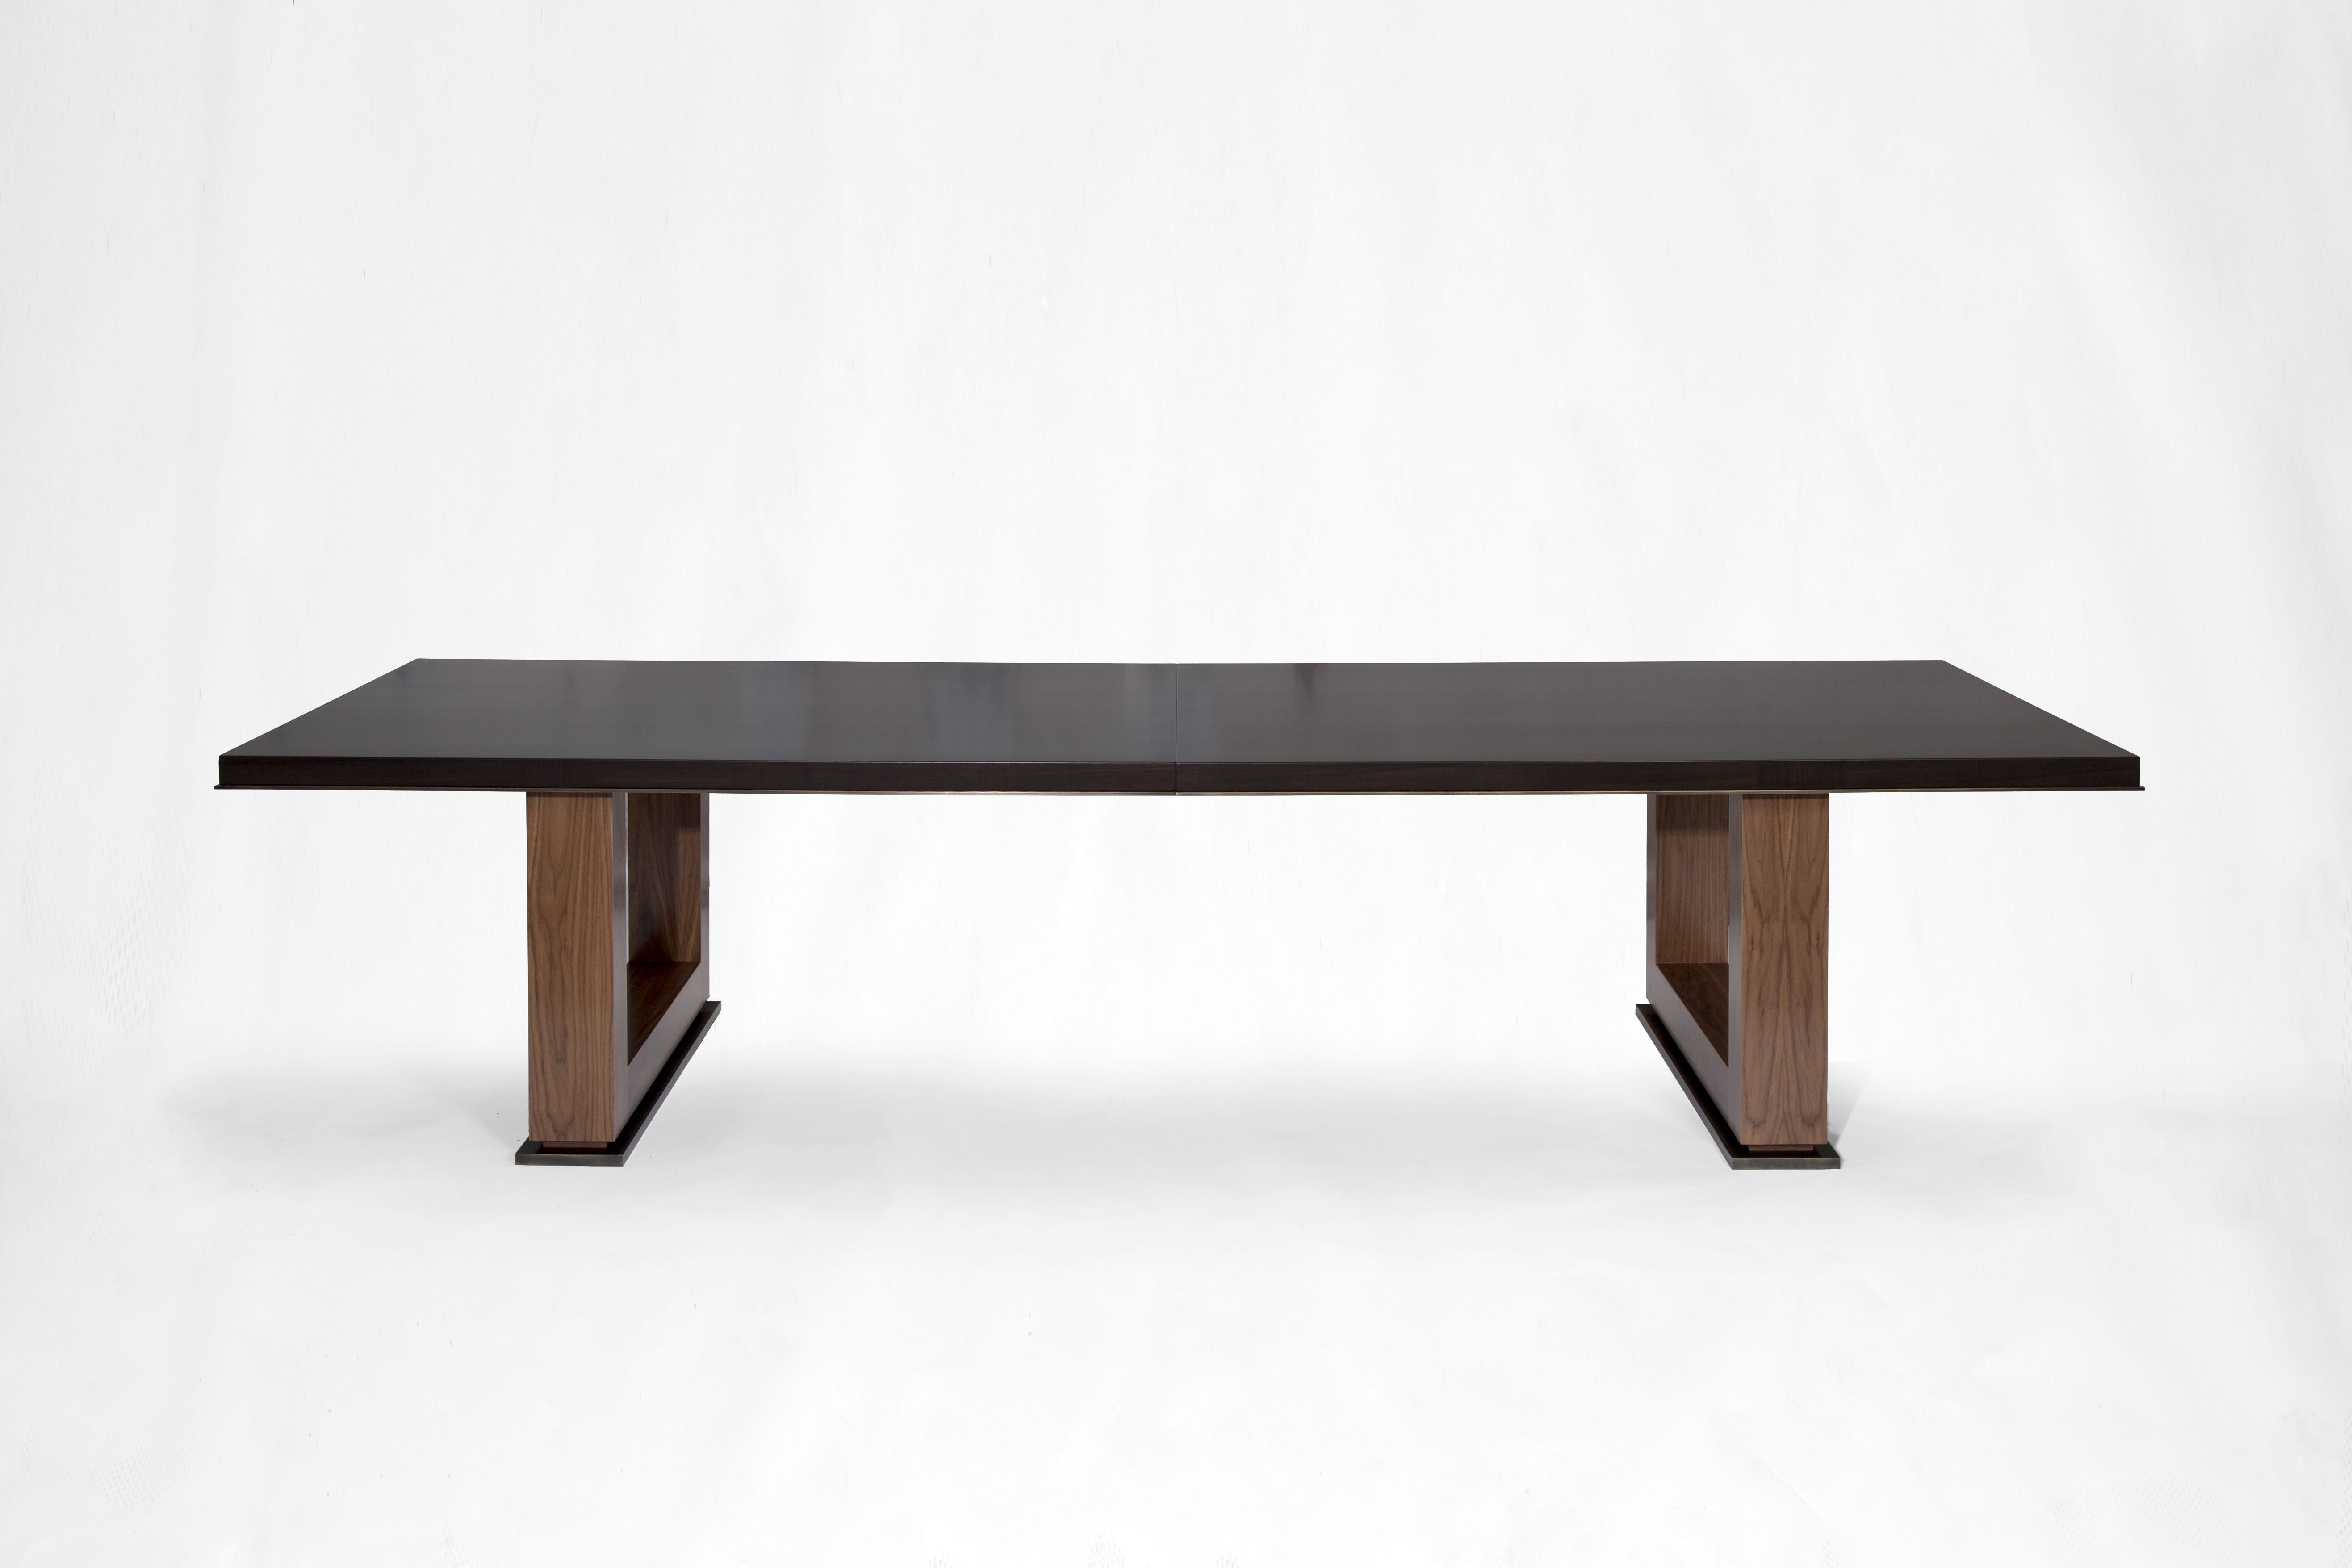 Ryan Jackson : Dennis Miller Associates Fine Contemporary Furniture Pertaining To Preferred Jackson Marble Side Tables (View 15 of 20)